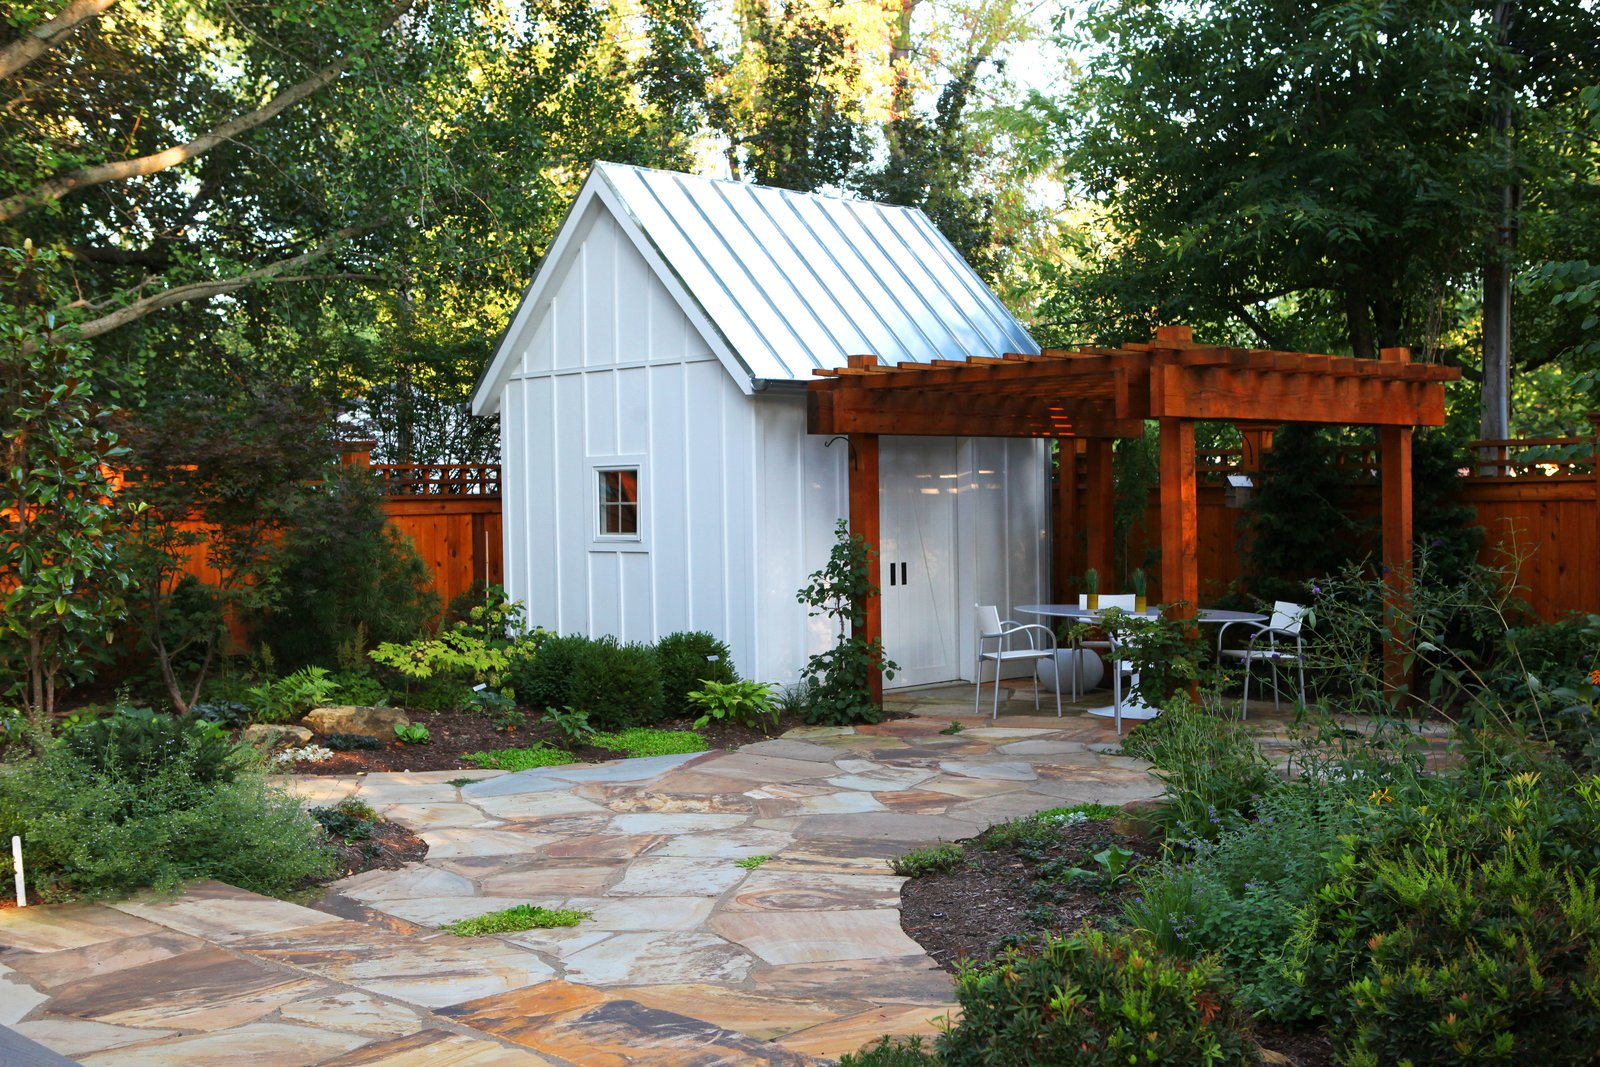 The Owner, a master gardener, desired a direct visual connection to the backyard, gardens, garden shed and pergola as an integral component of the design.